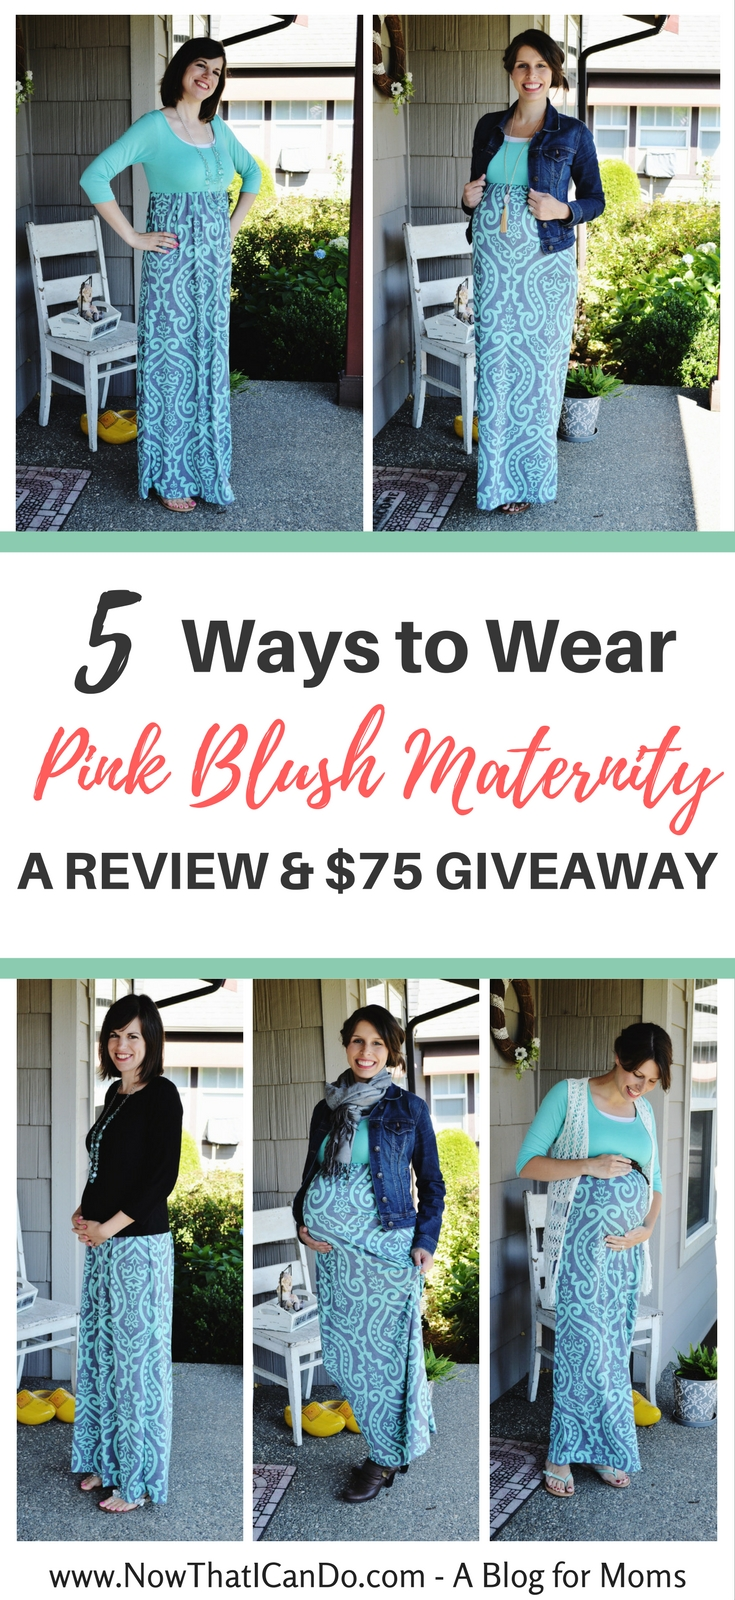 5 Ways To Wear Red Lipstick Like A French Girl: 5 Ways To Wear A Pink Blush Maxi Dress: A Review